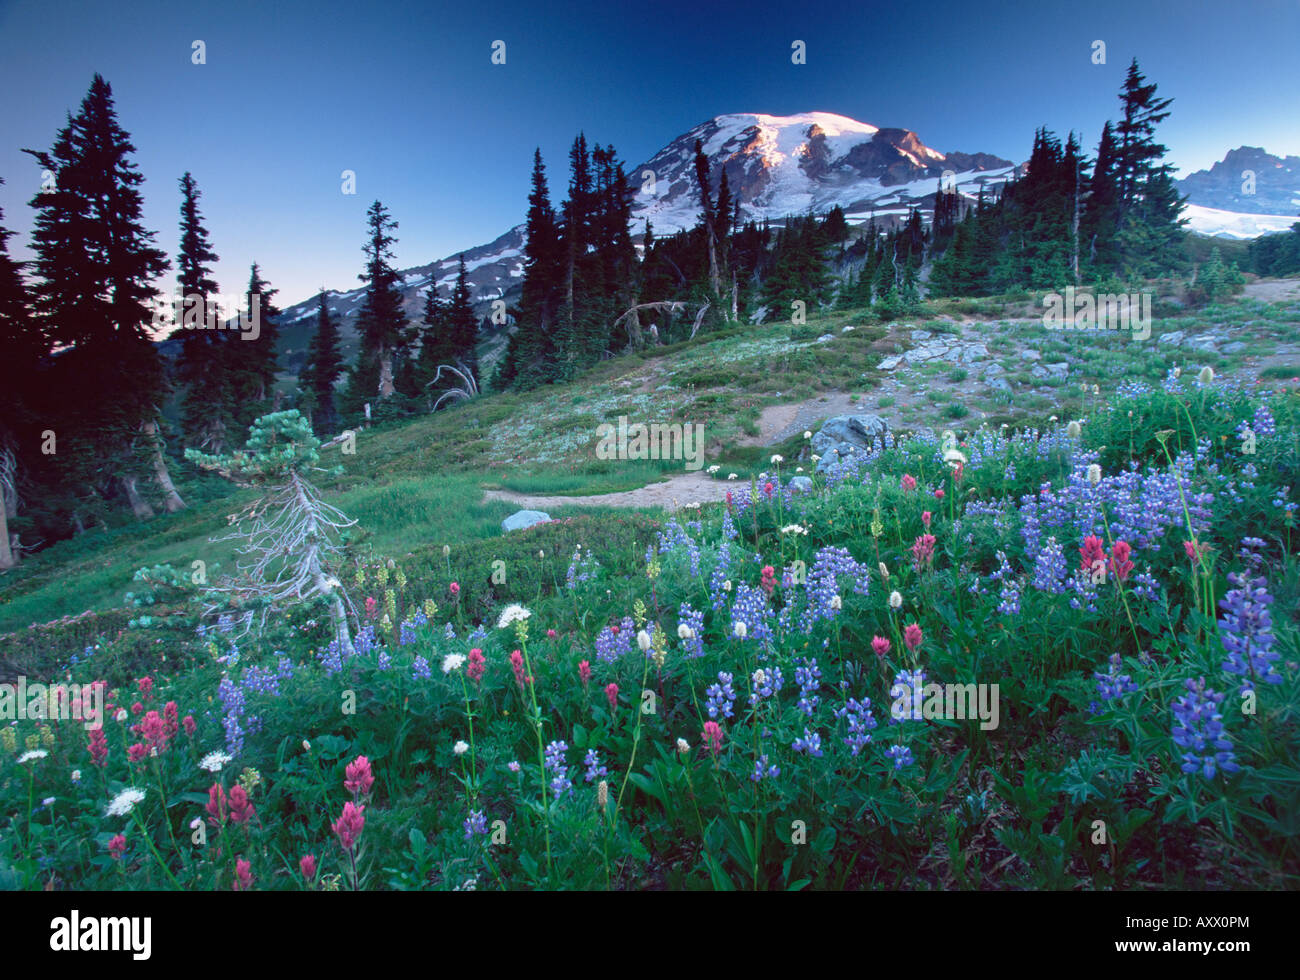 Landscape with wild flowers, Mount Rainier National Park, Washington state, United States of America, North America - Stock Image